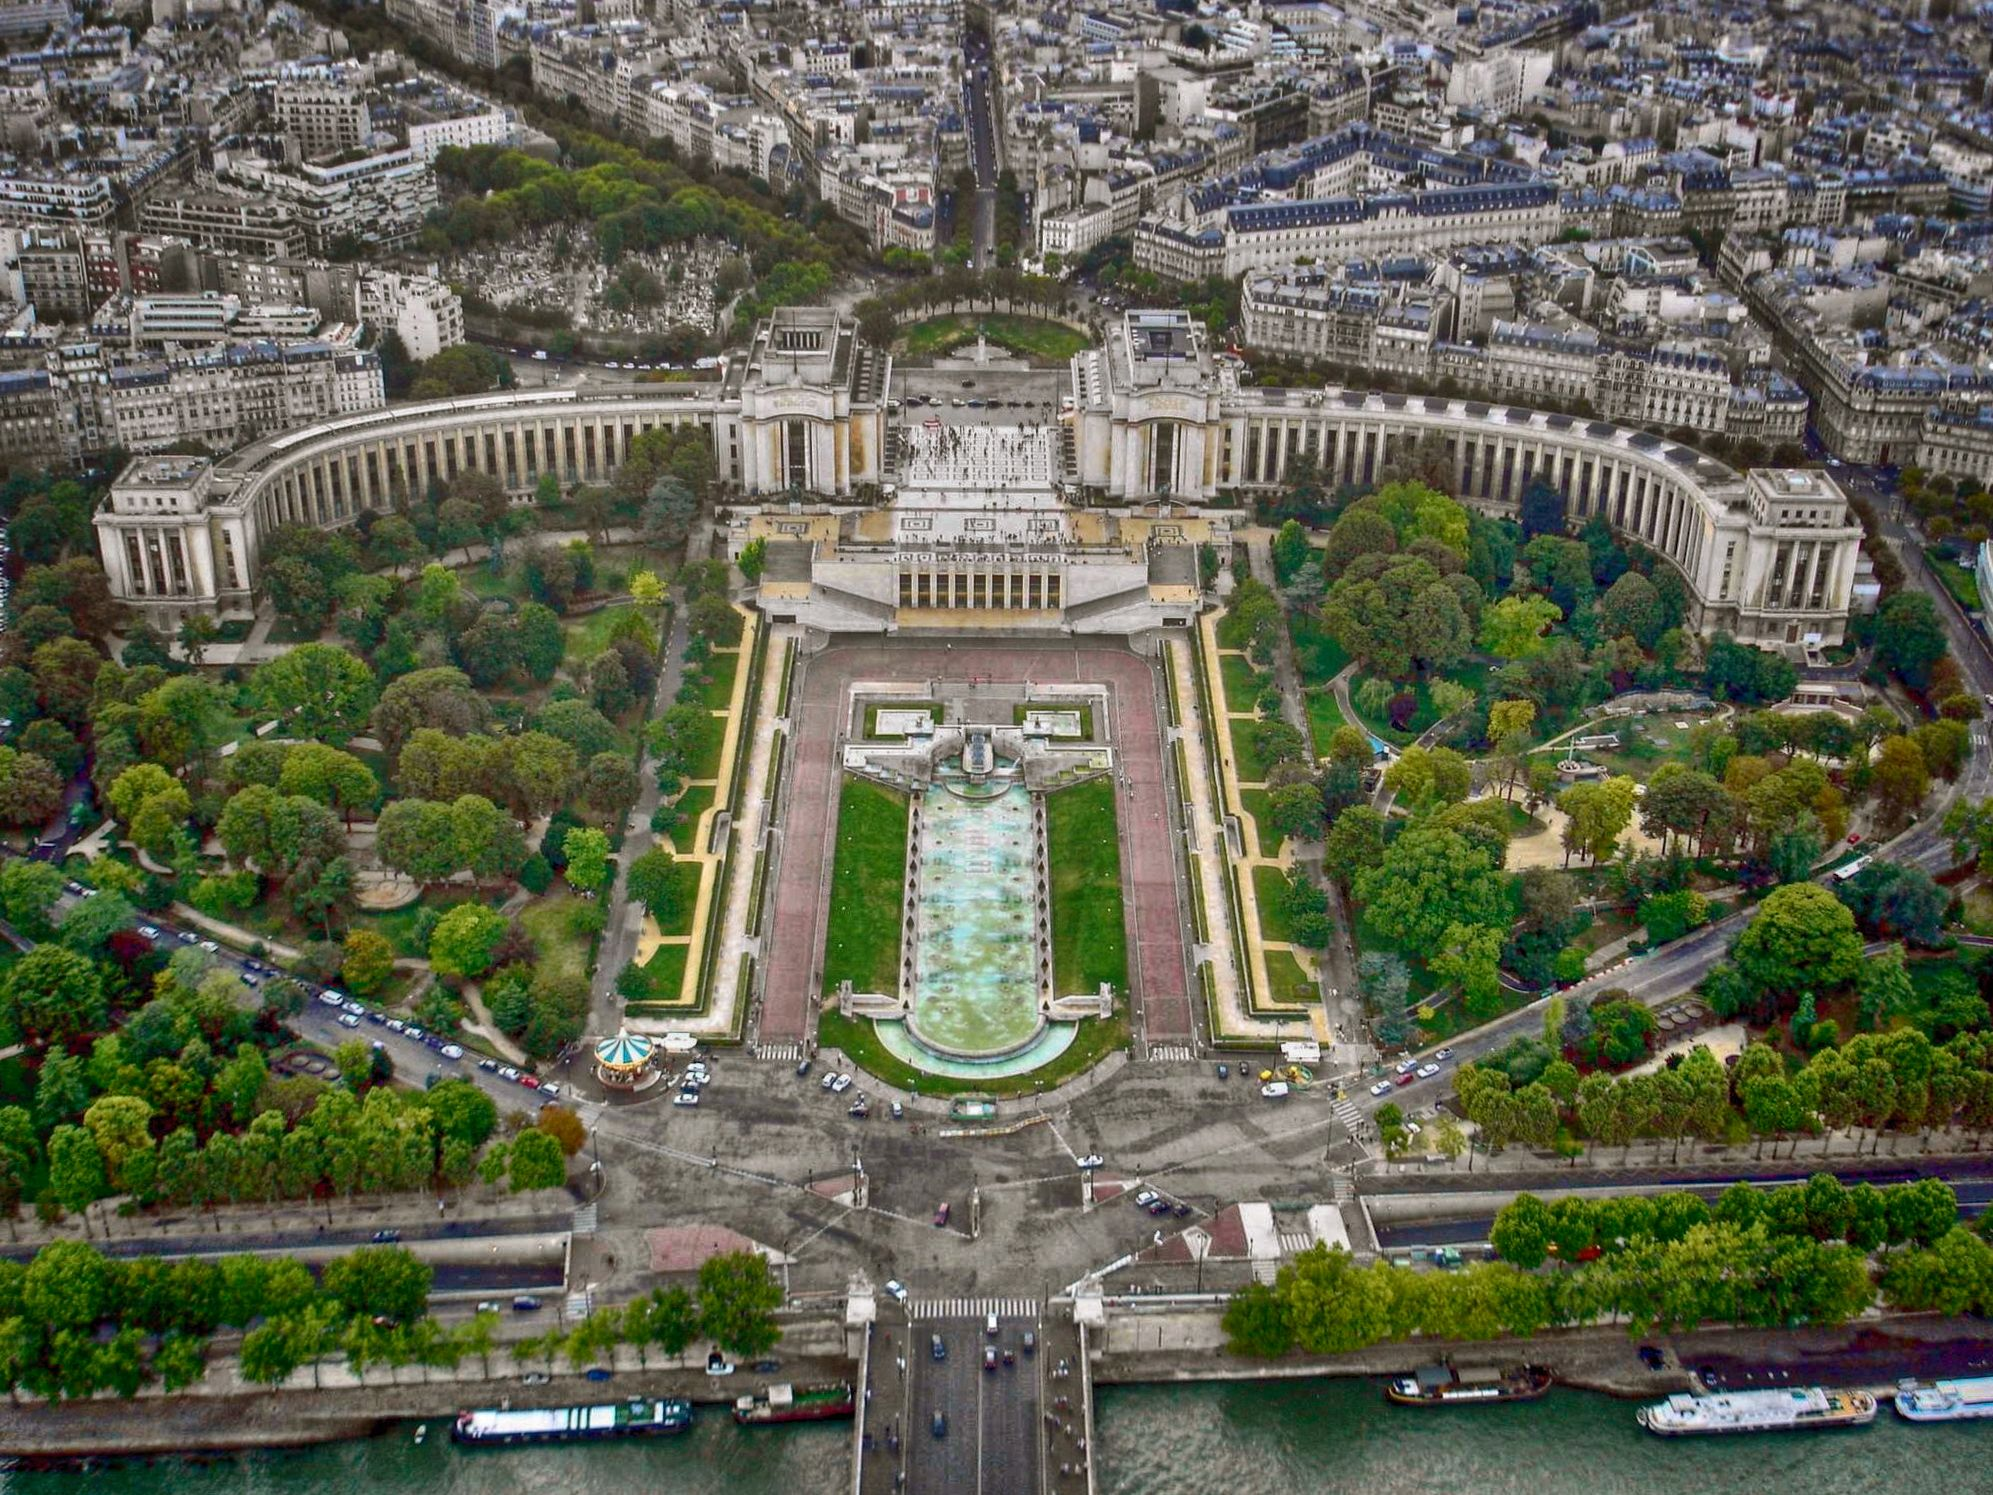 The beautiful view of the Jardins du Trocadéro from the Eiffel